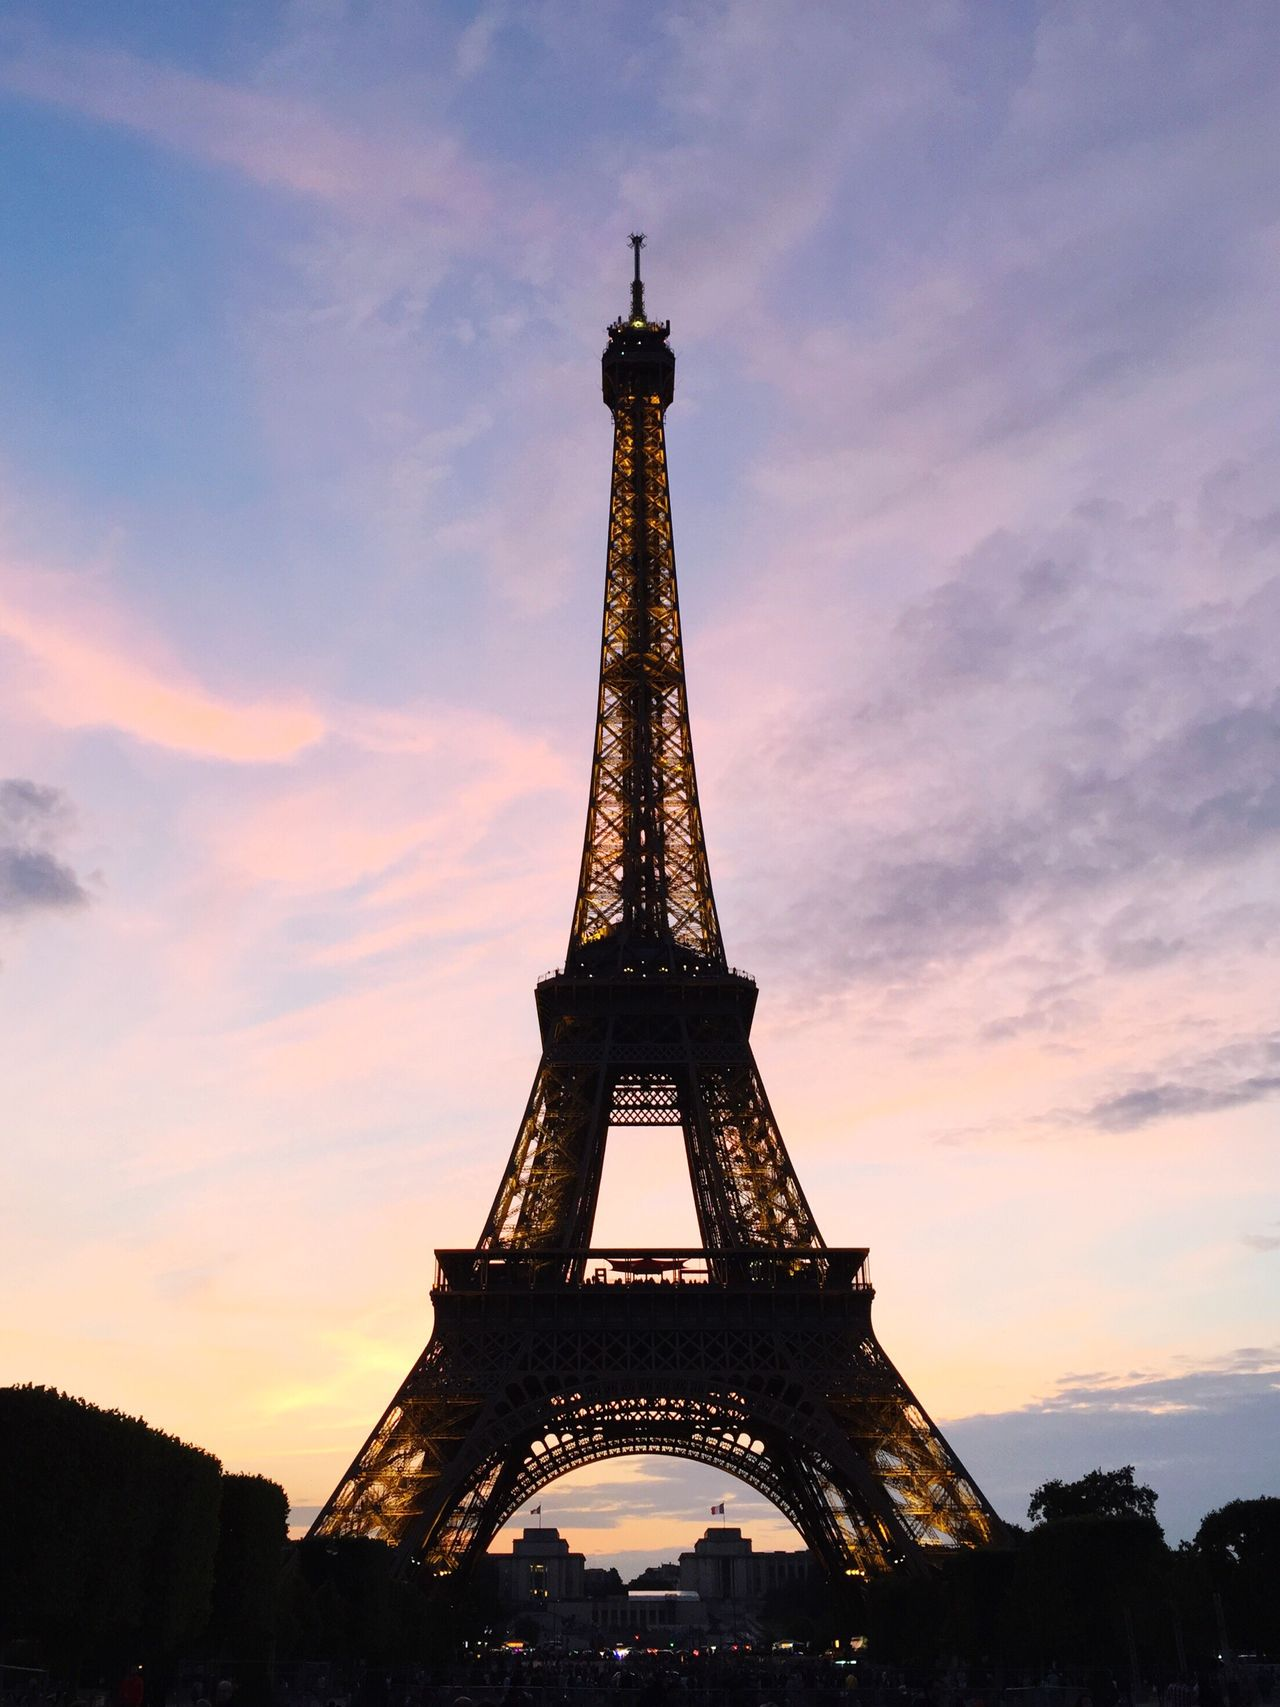 Tour Eiffel Cultures Architecture Tourism First Eyeem Photo The City Light